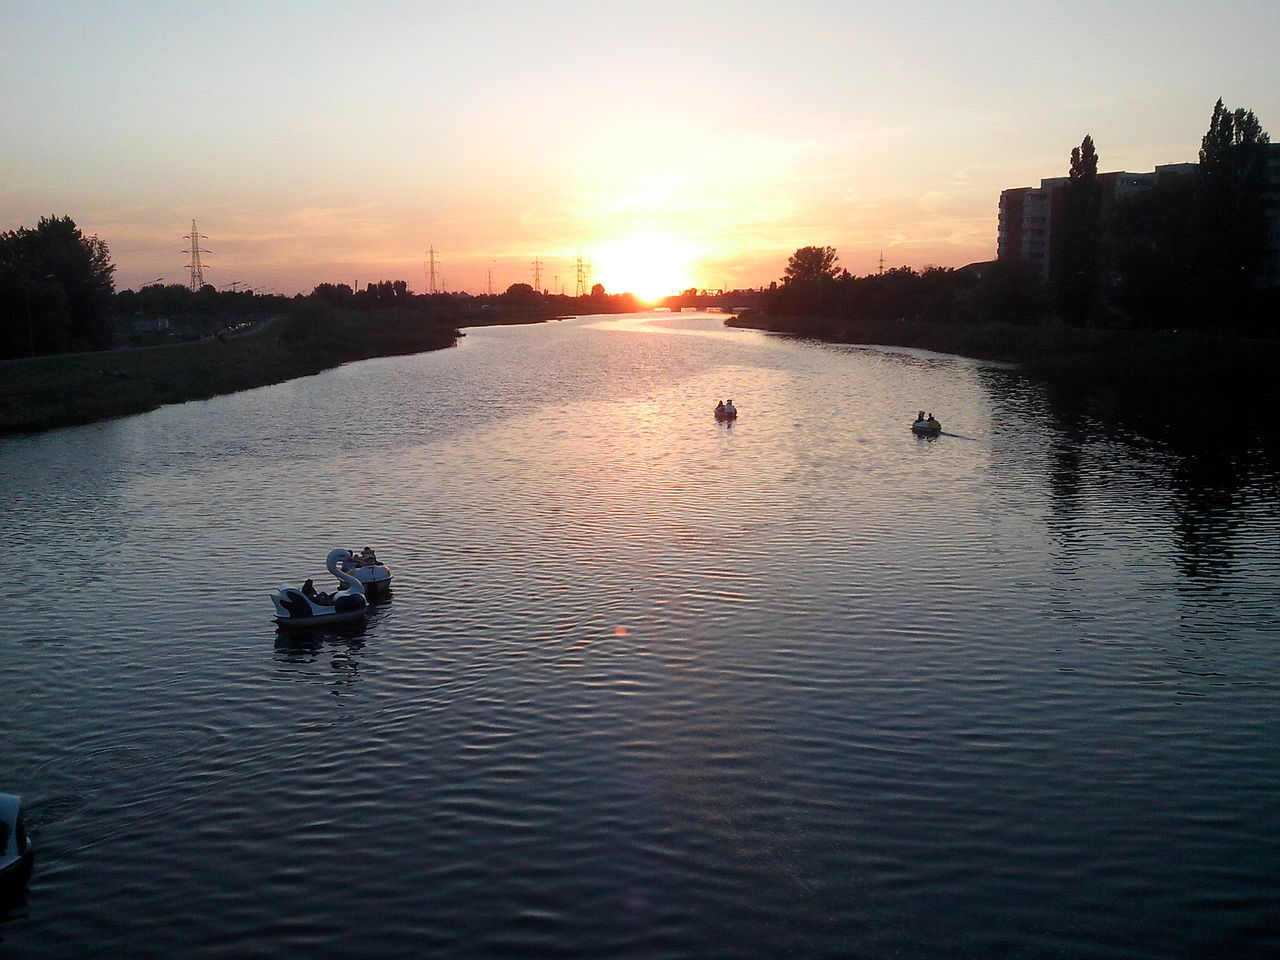 Sunset Water Reflection Outdoors Tranquility Silhouette Nature Evening Bihor Panoramic Photography Summer Romania Nagyvárad City Urban Oradea,România River Boats Activity Quiet Moments Chill Mode Sun Sunlight Warm Sky